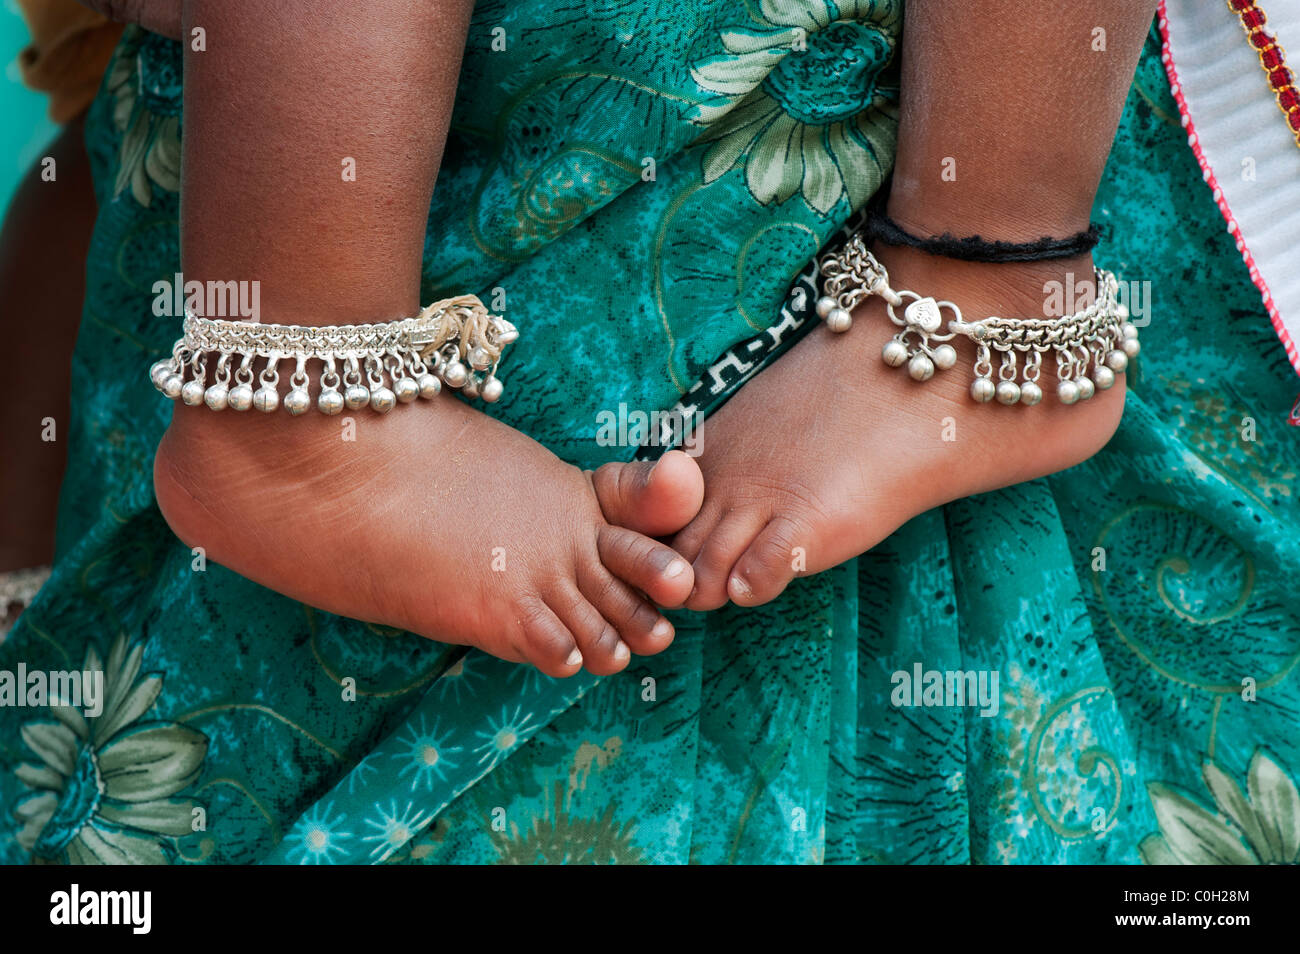 Indian babies bare feet against mothers green floral sari. Andhra Pradesh, India - Stock Image